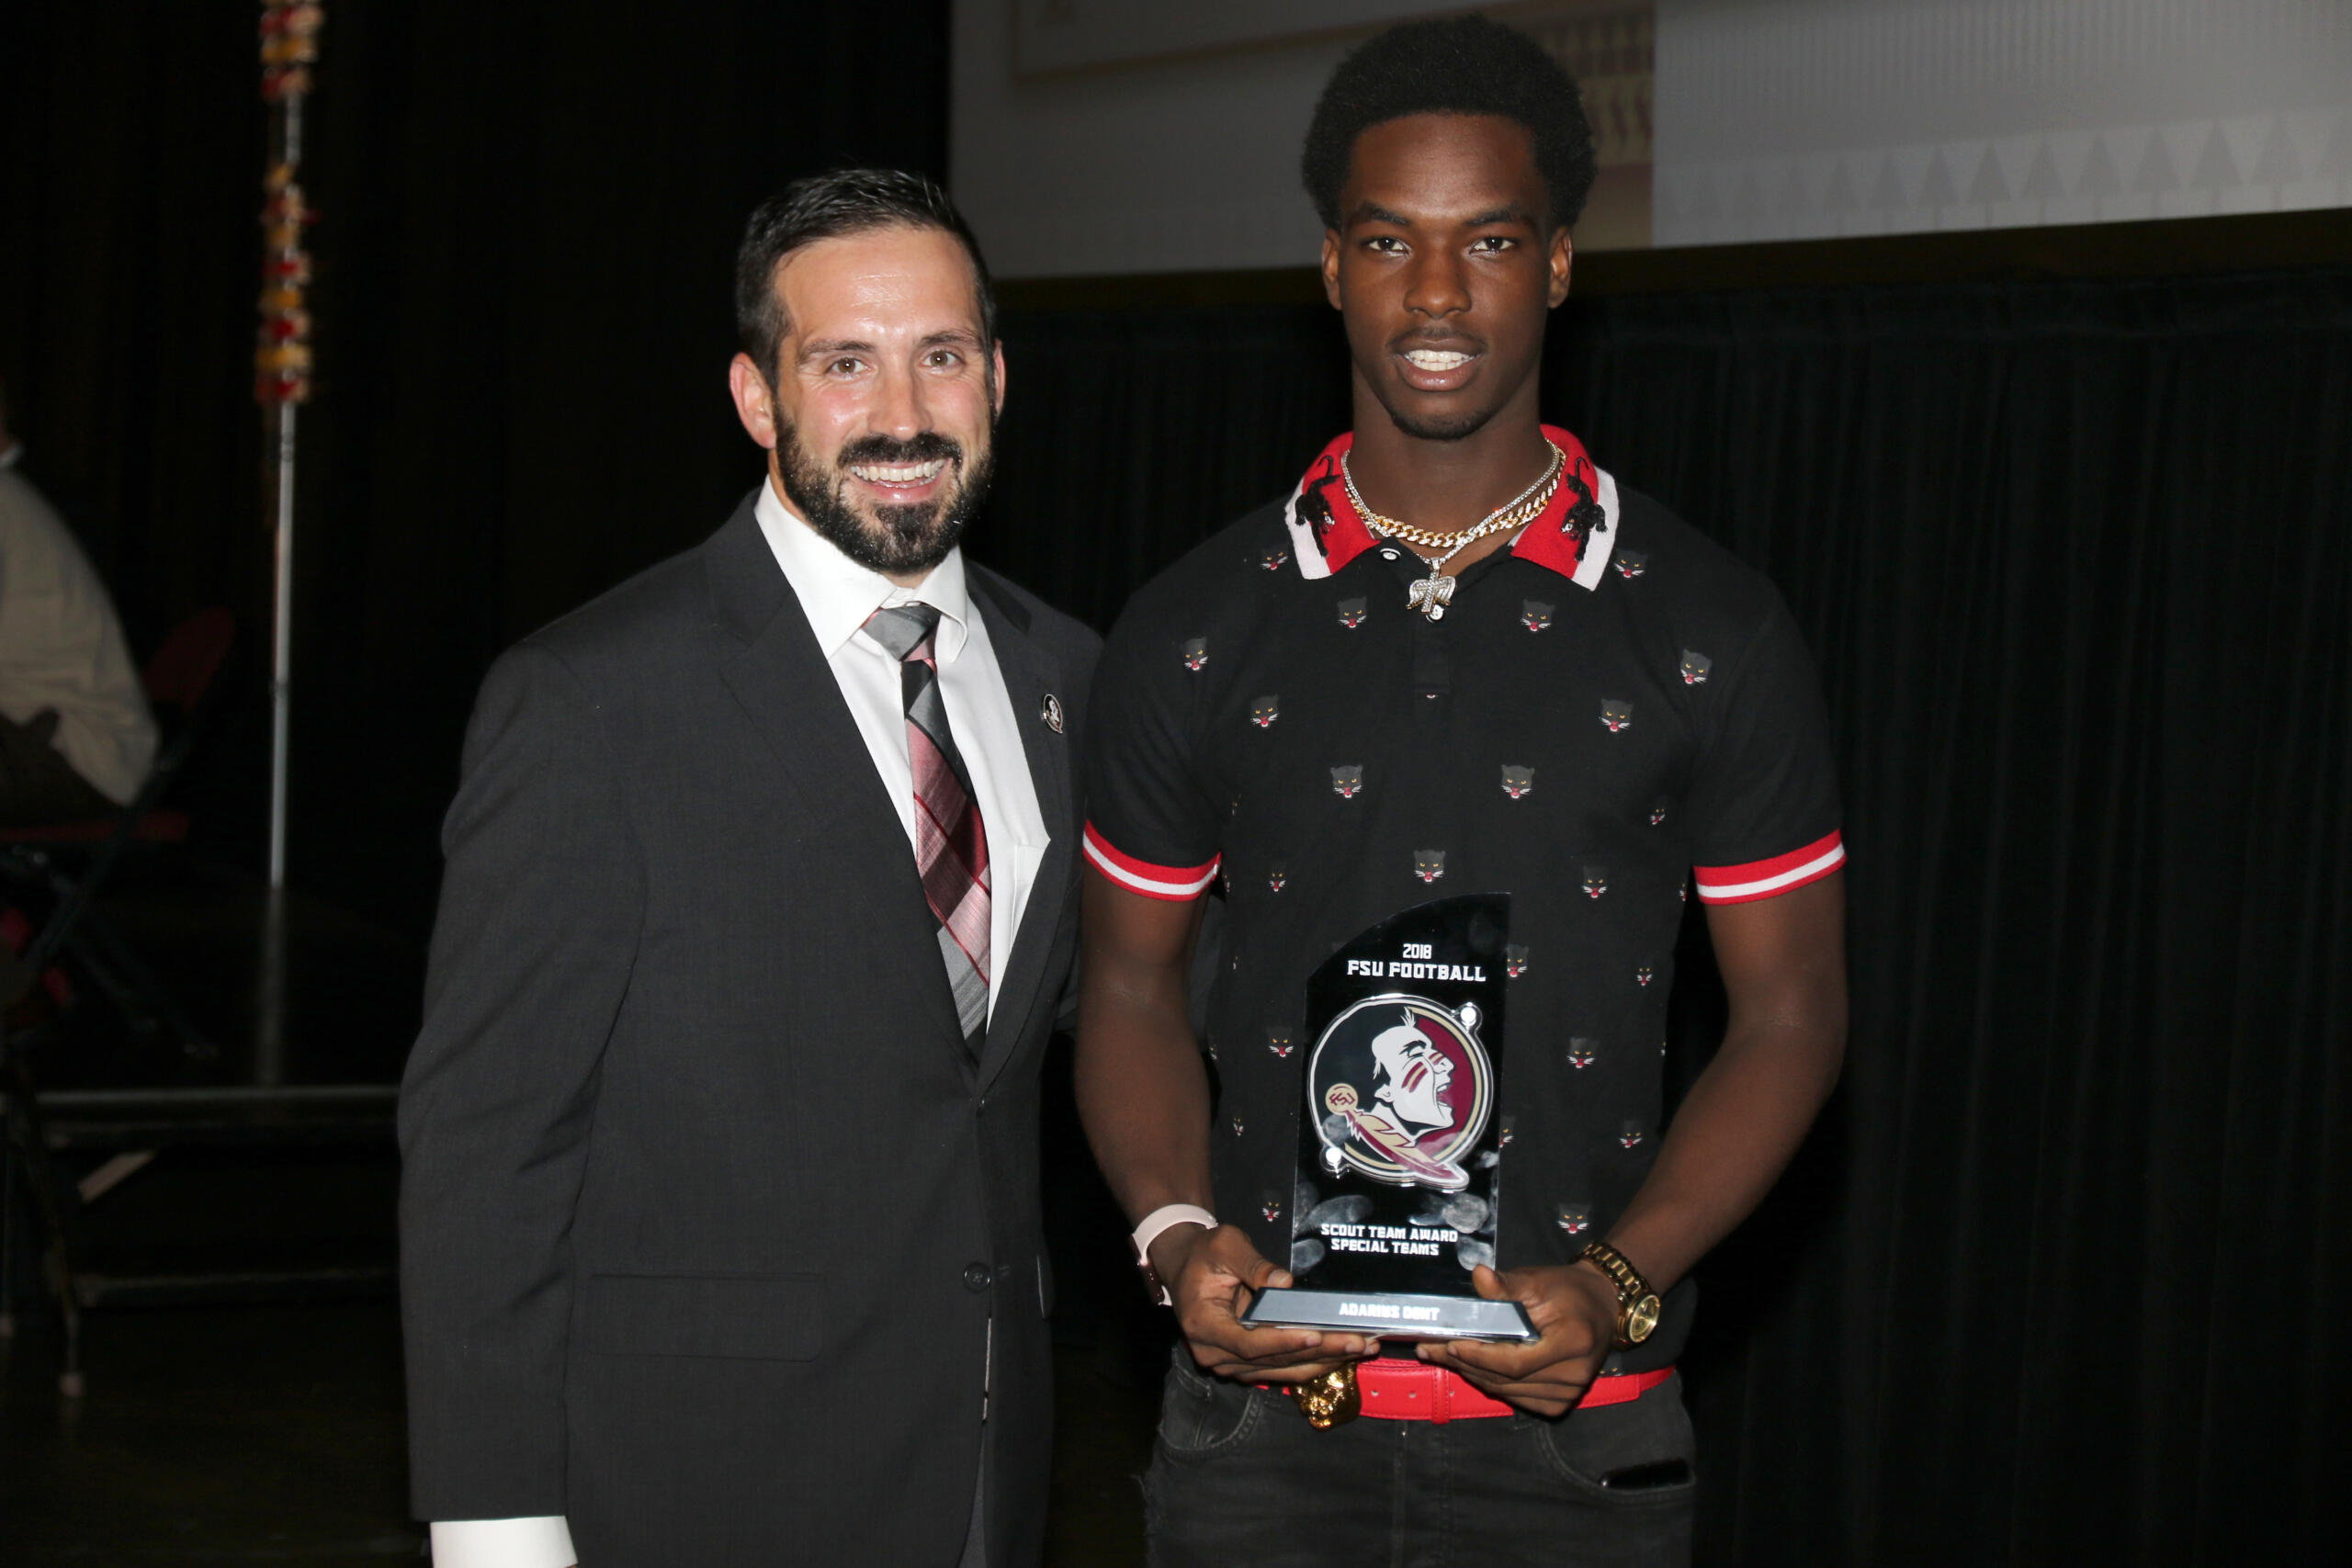 Photos: Awards Banquet